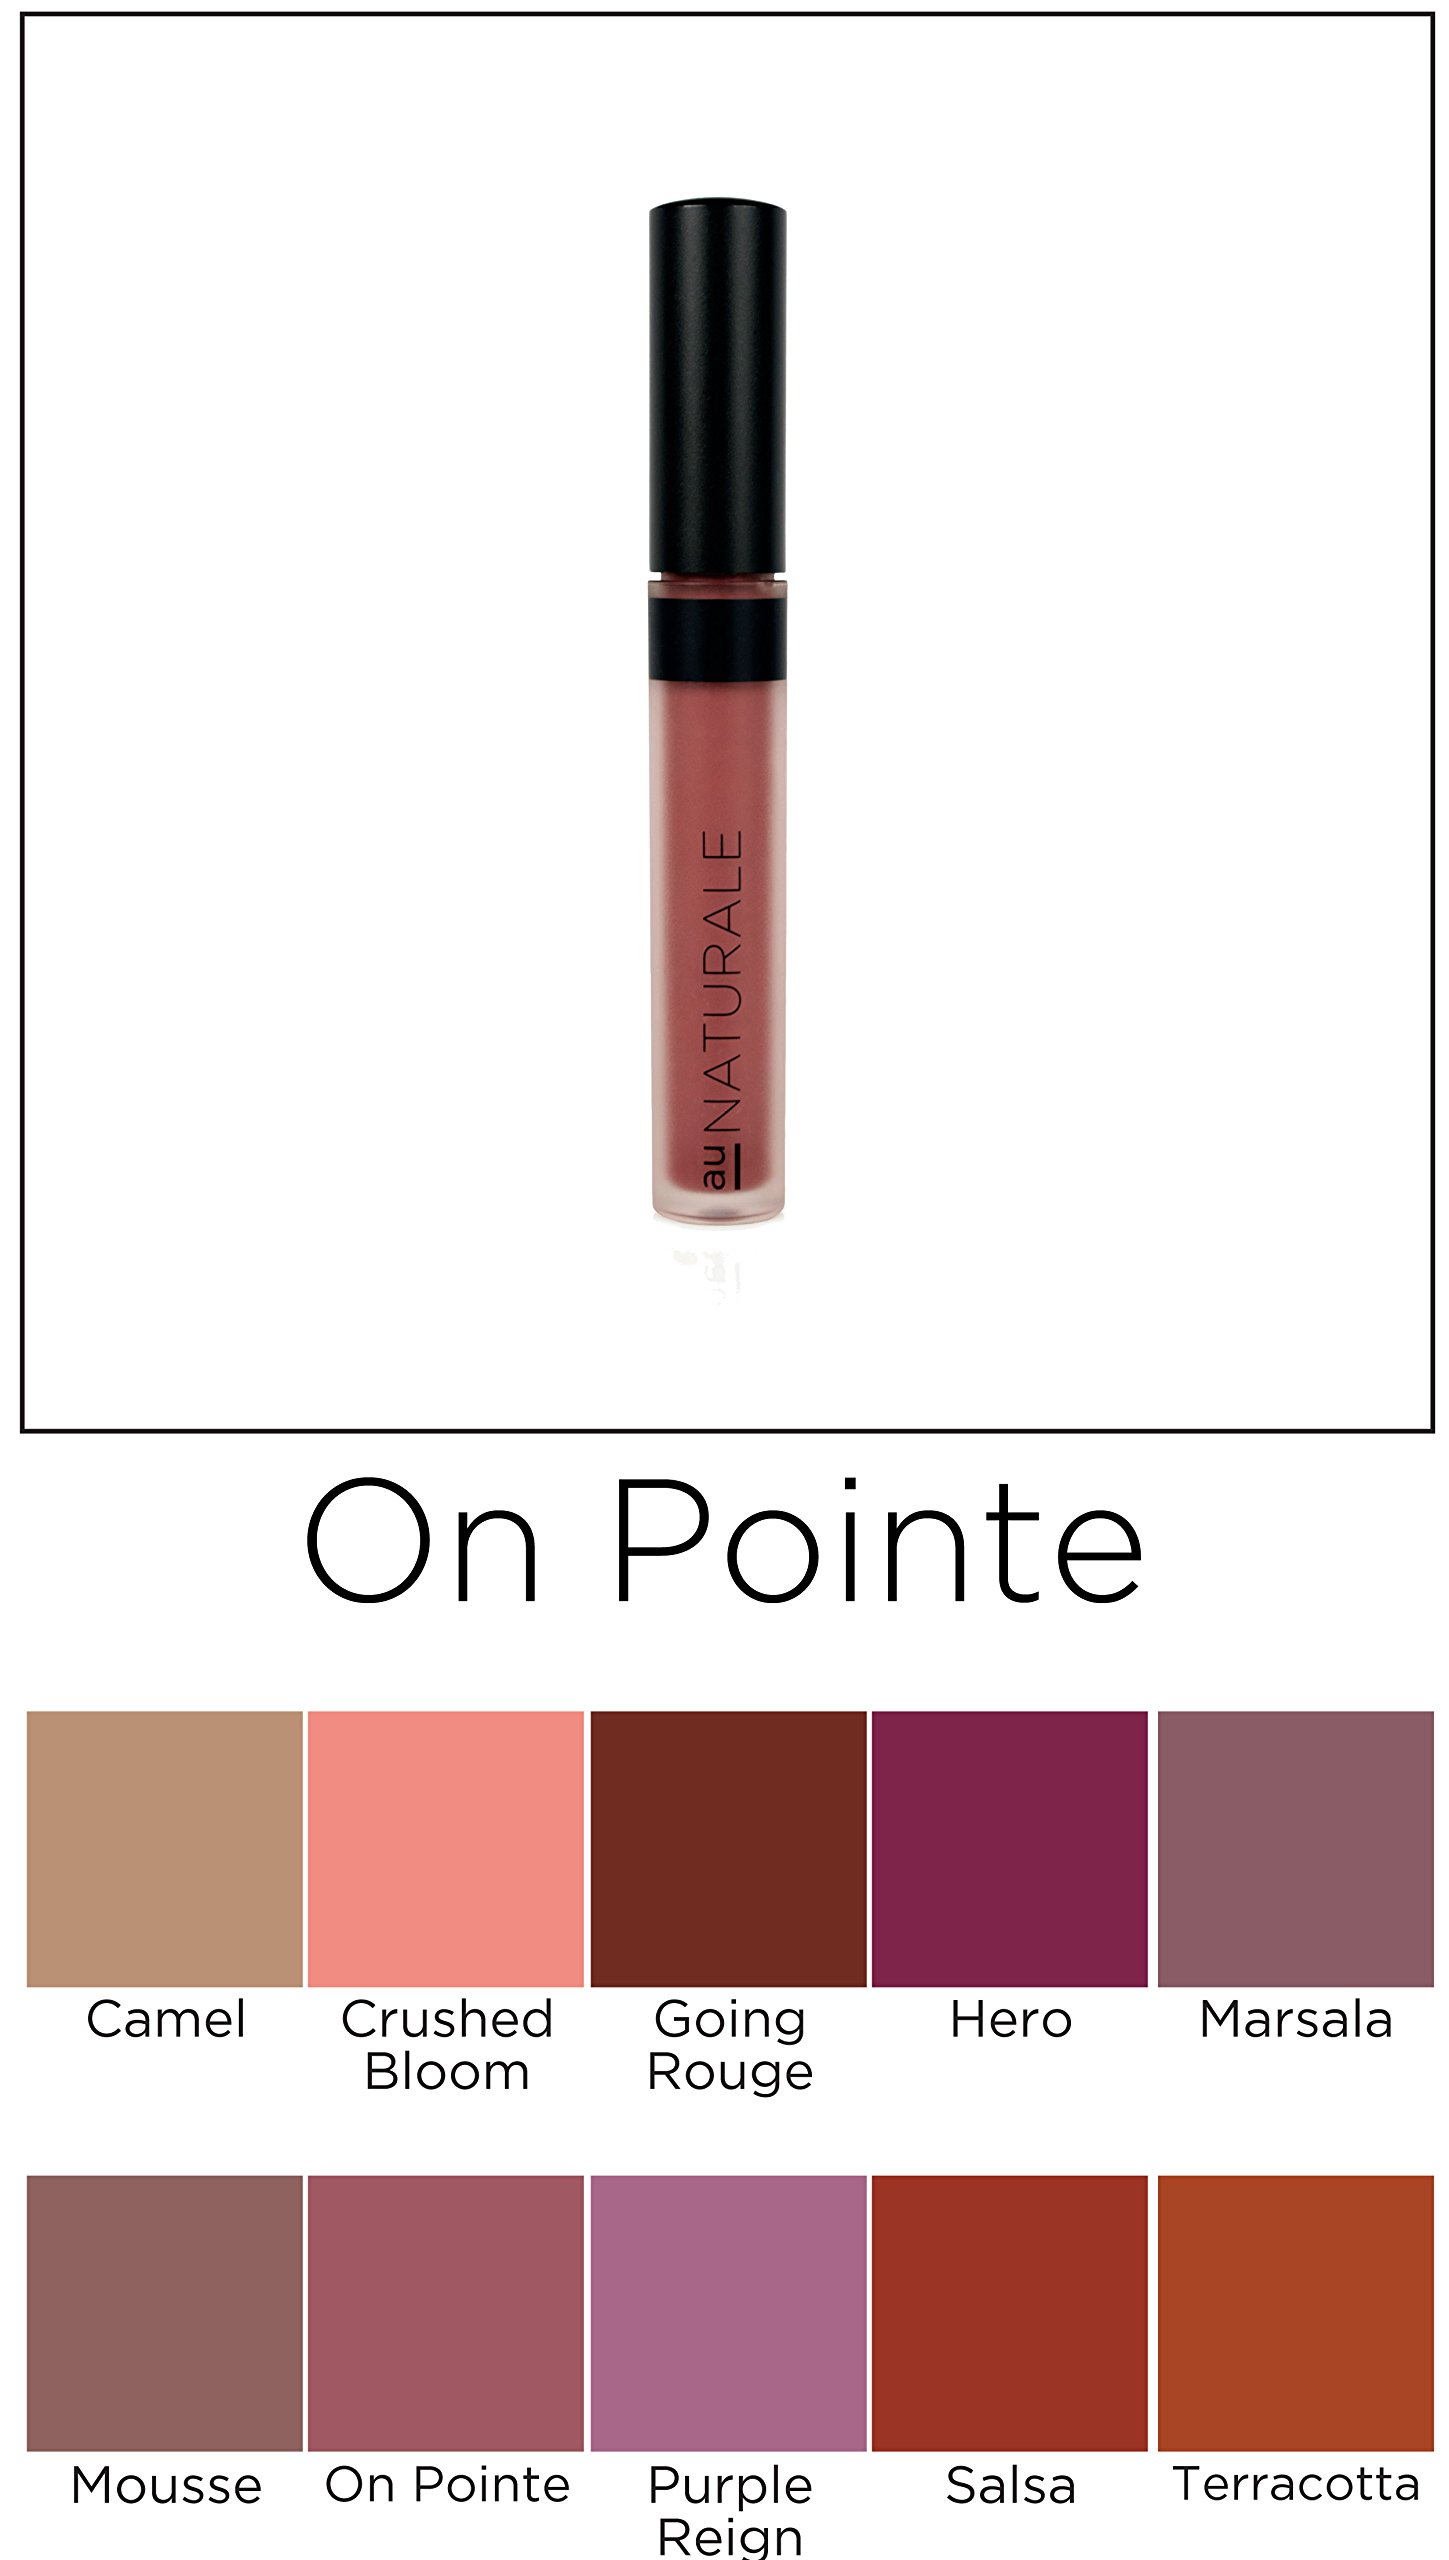 Au Naturale su/Stain Lip Stain in On Pointe | Vegan | Organic | Made in USA by Au Naturale (Image #5)